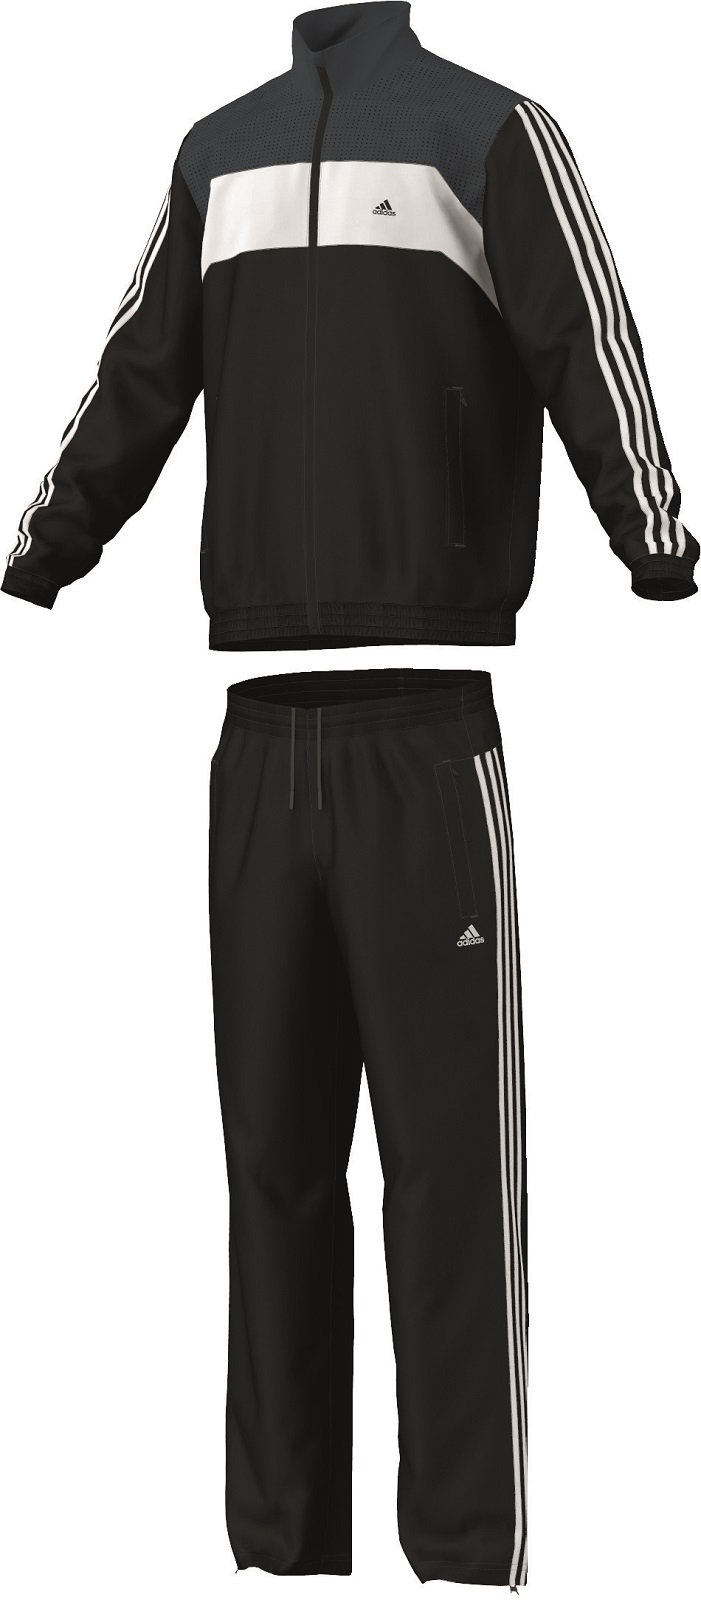 Herren Sportanzug Train Woven Tracksuit